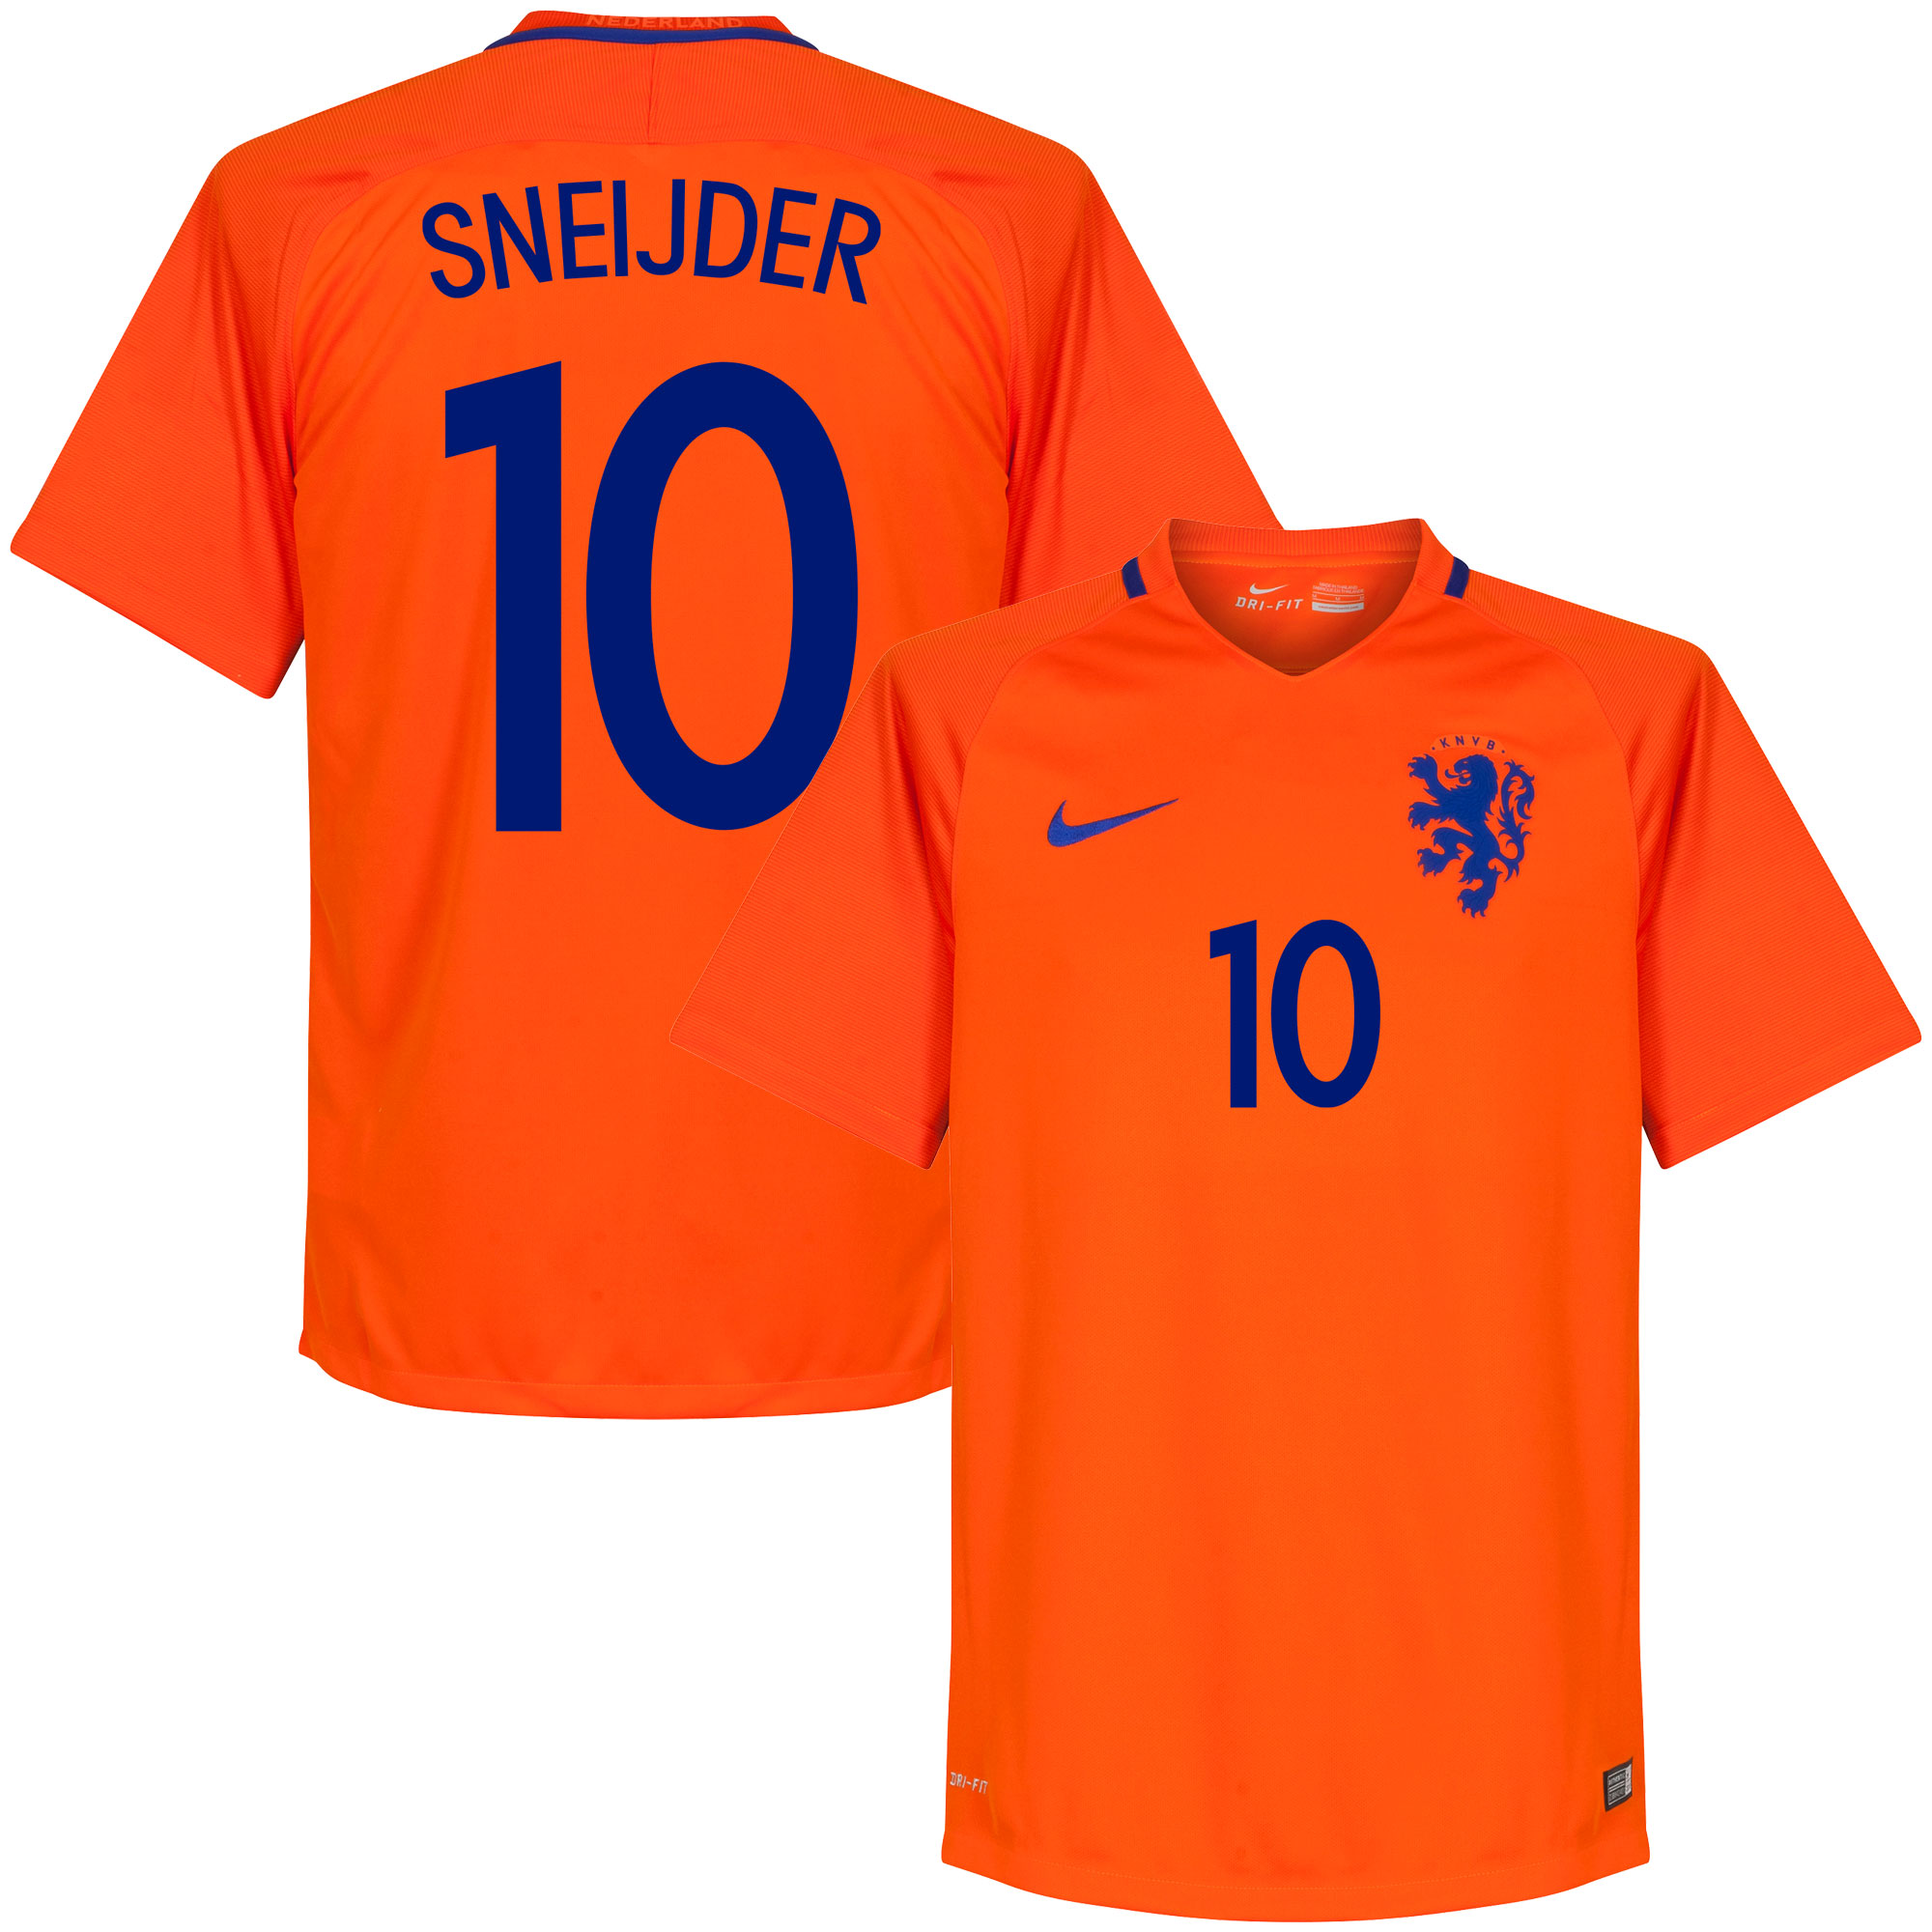 Holland Home Sneijder Jersey 2016 / 2017 (Fan Style Printing) - M